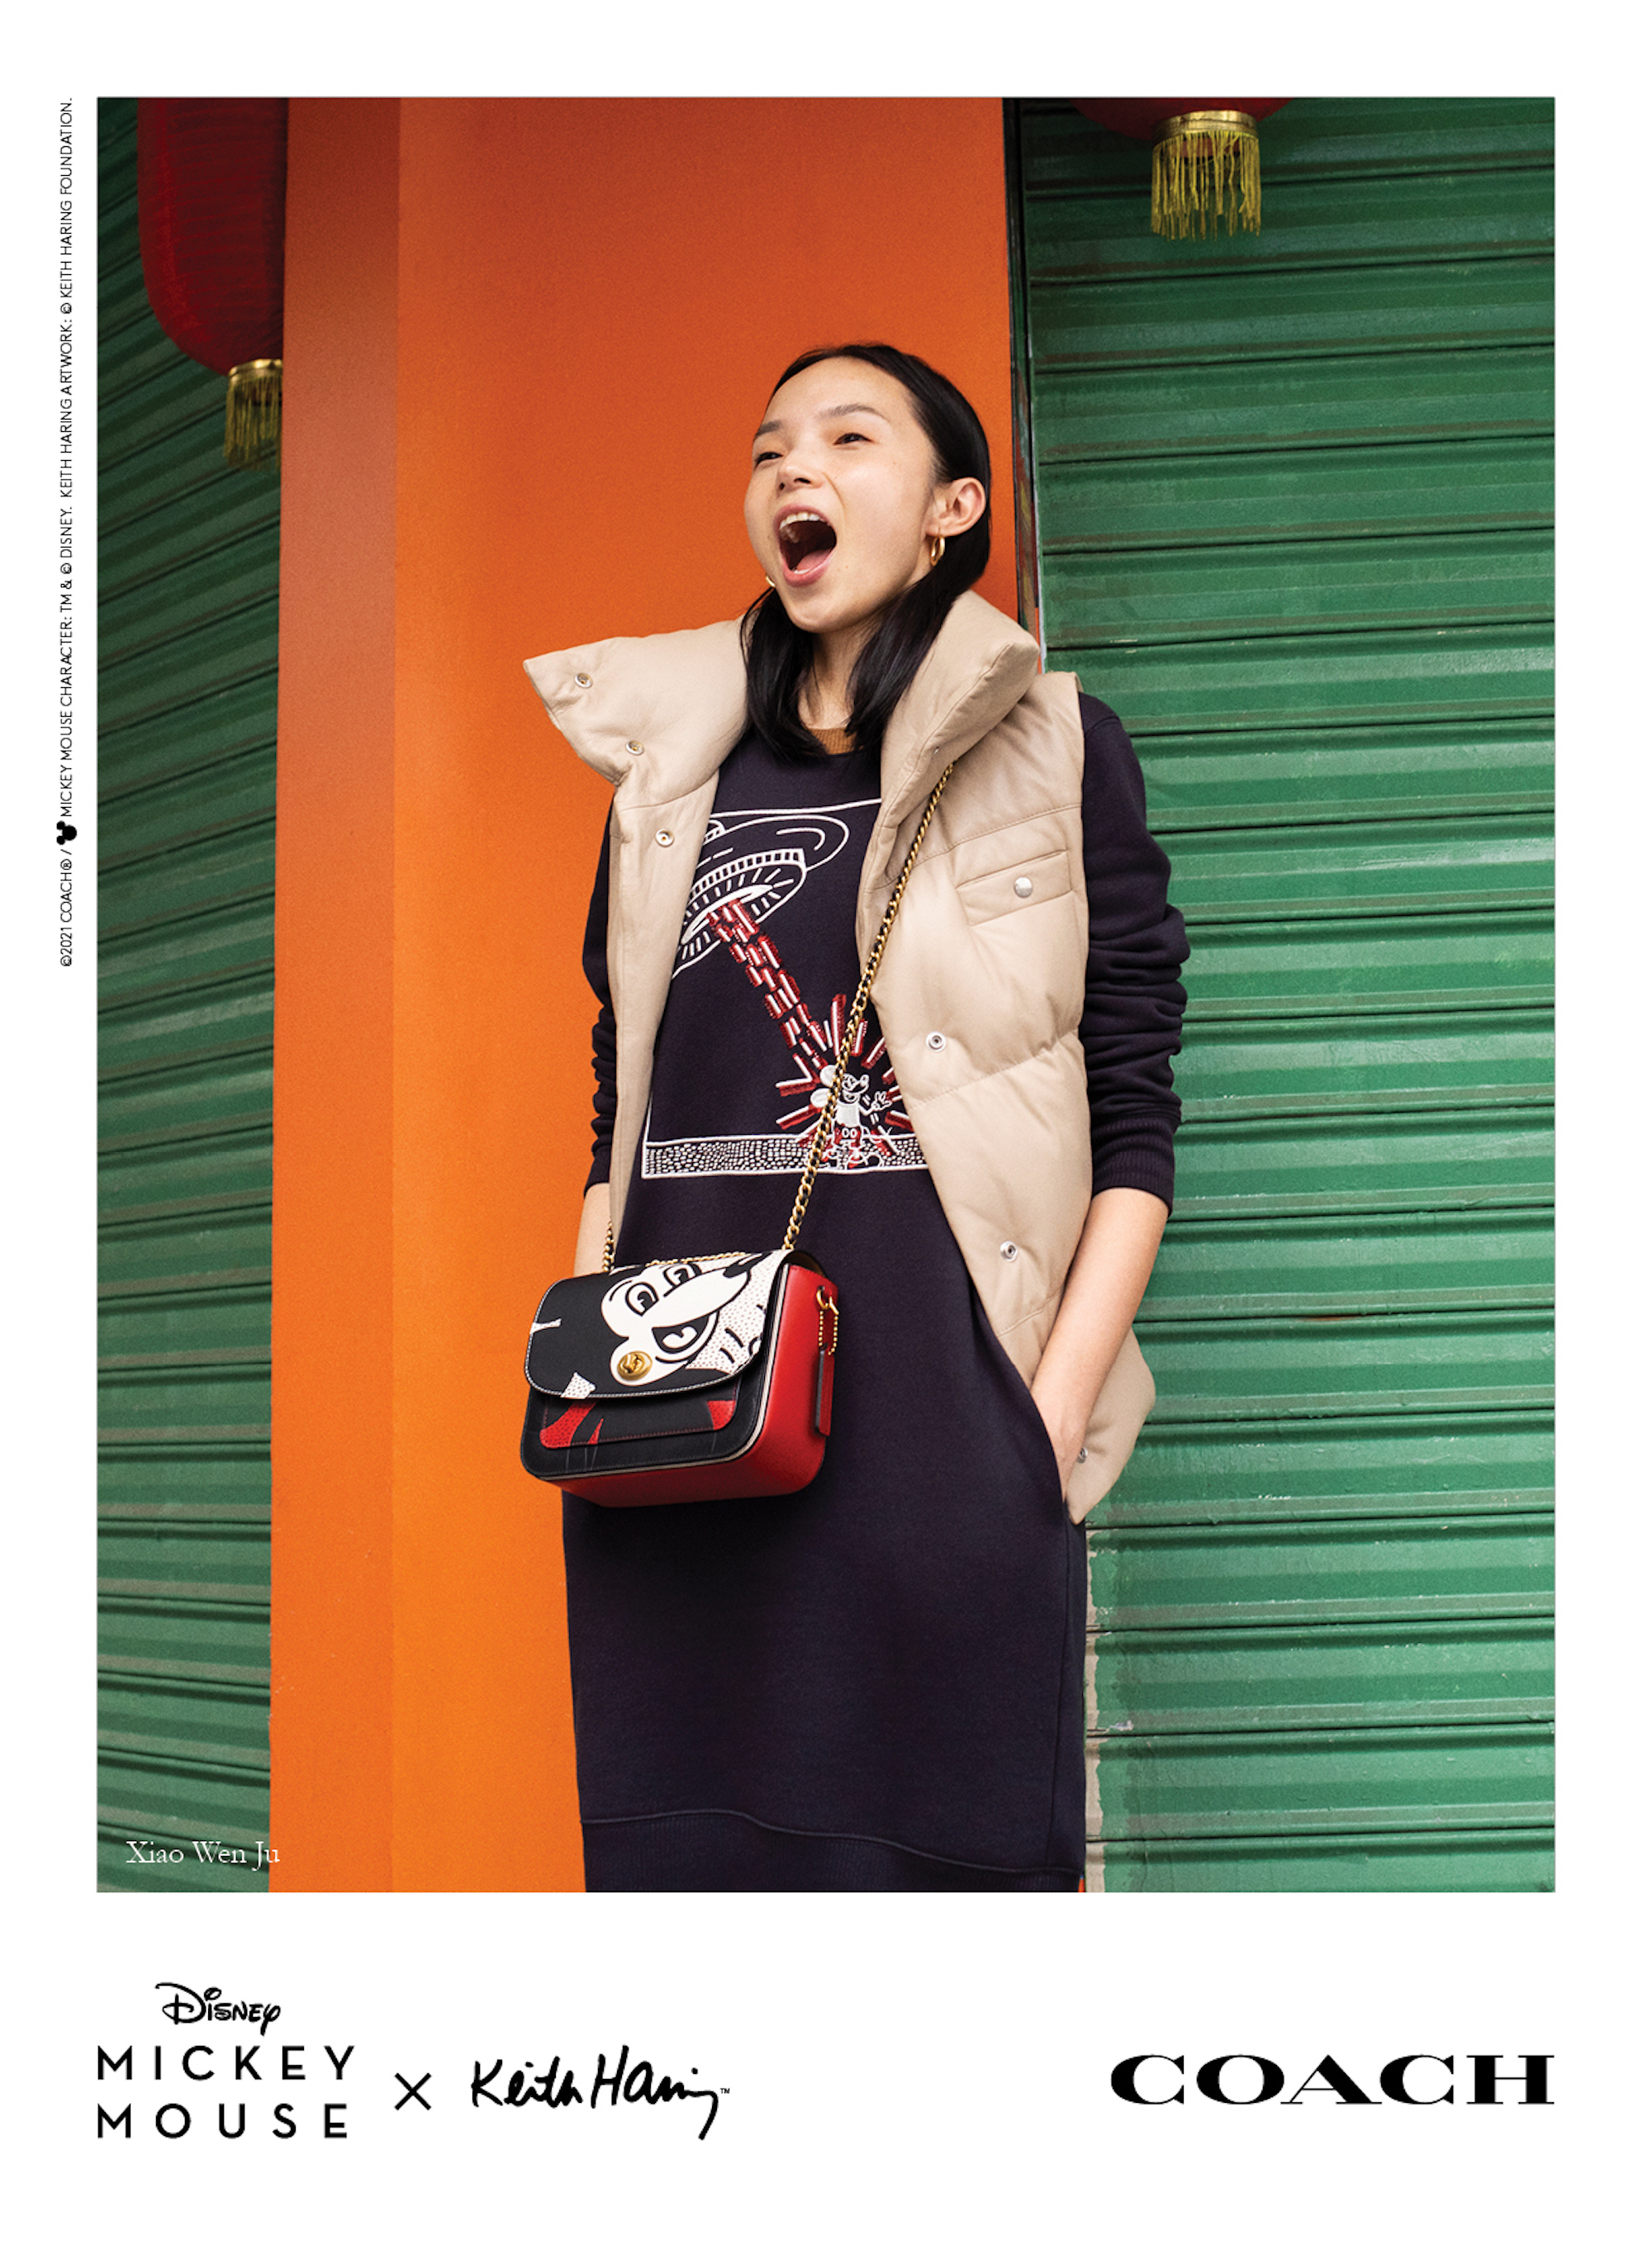 Mickey x Keith Haring for Coach Xiao Wen Ju